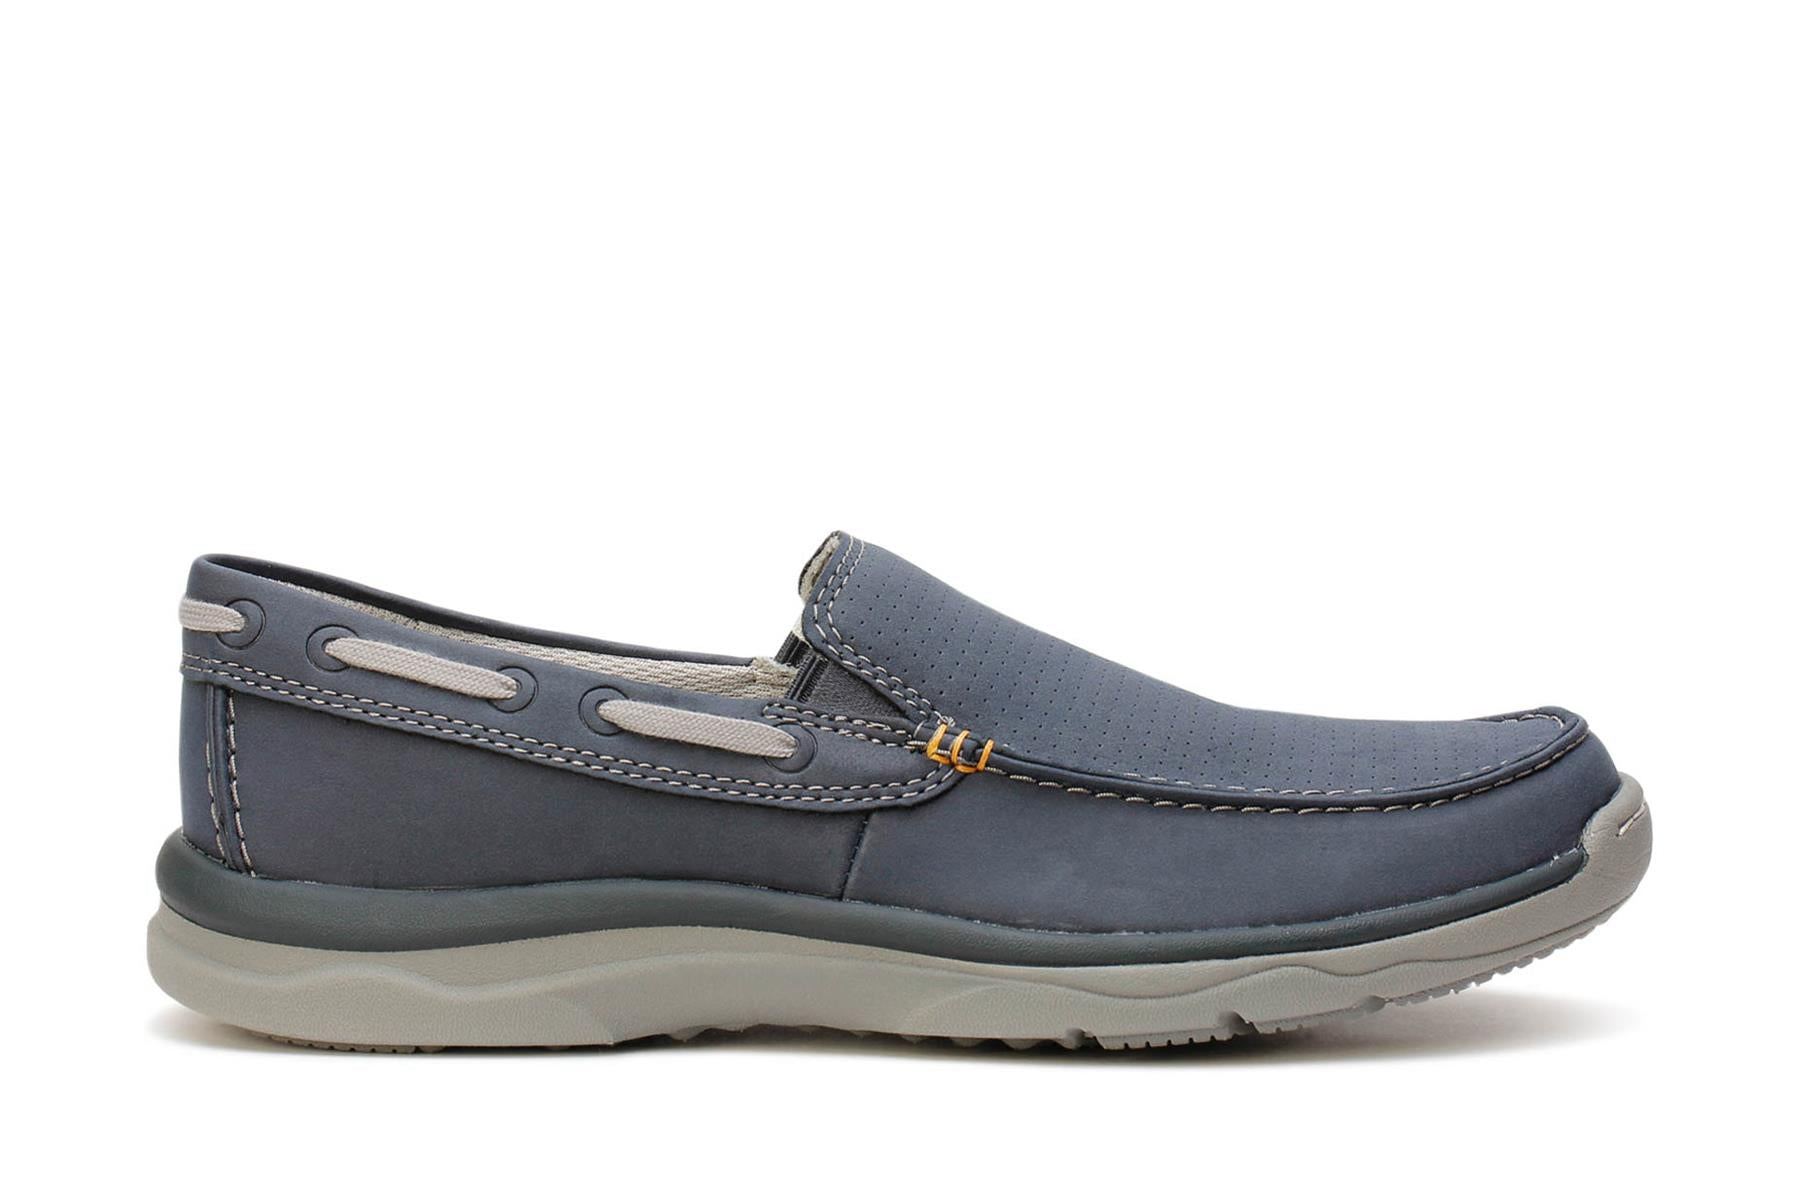 clarks-cloudsteppers-mens-slip-on-shoes-marus-sail-navy-26132756-main